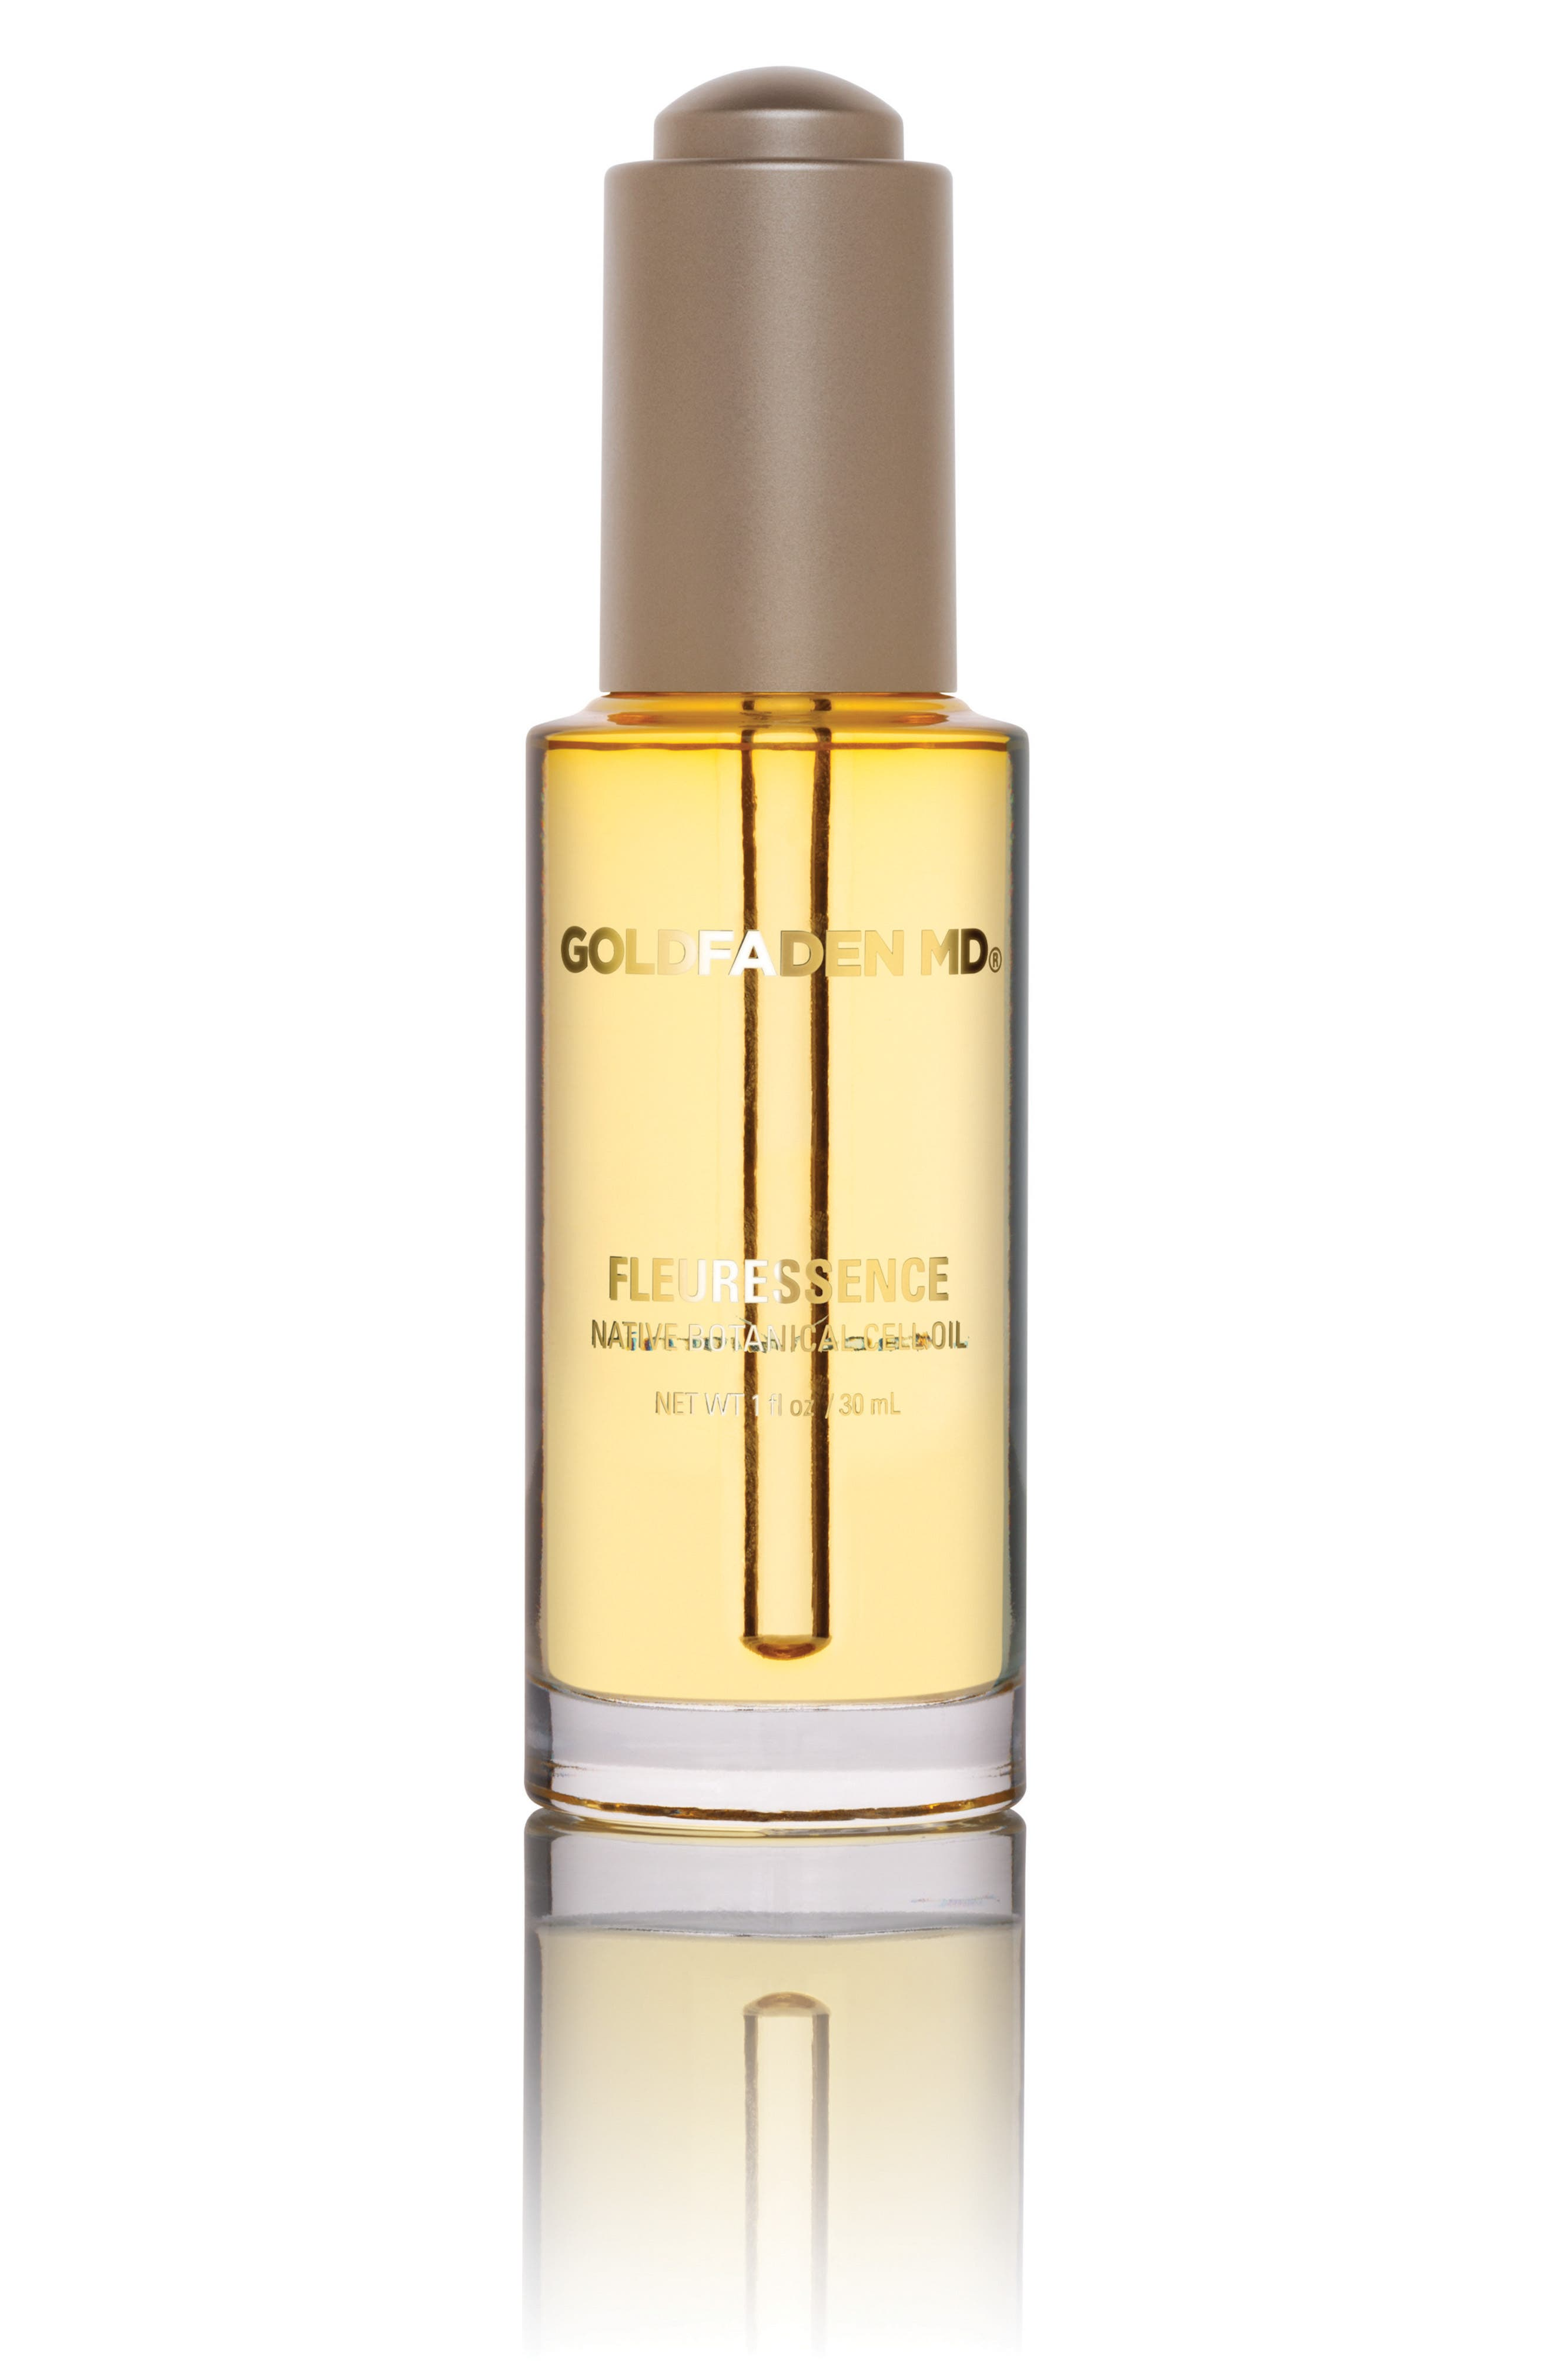 SPACE.NK.apothecary Goldfaden MD Fleuressence Native Botanical Cell Oil,                             Alternate thumbnail 2, color,                             000